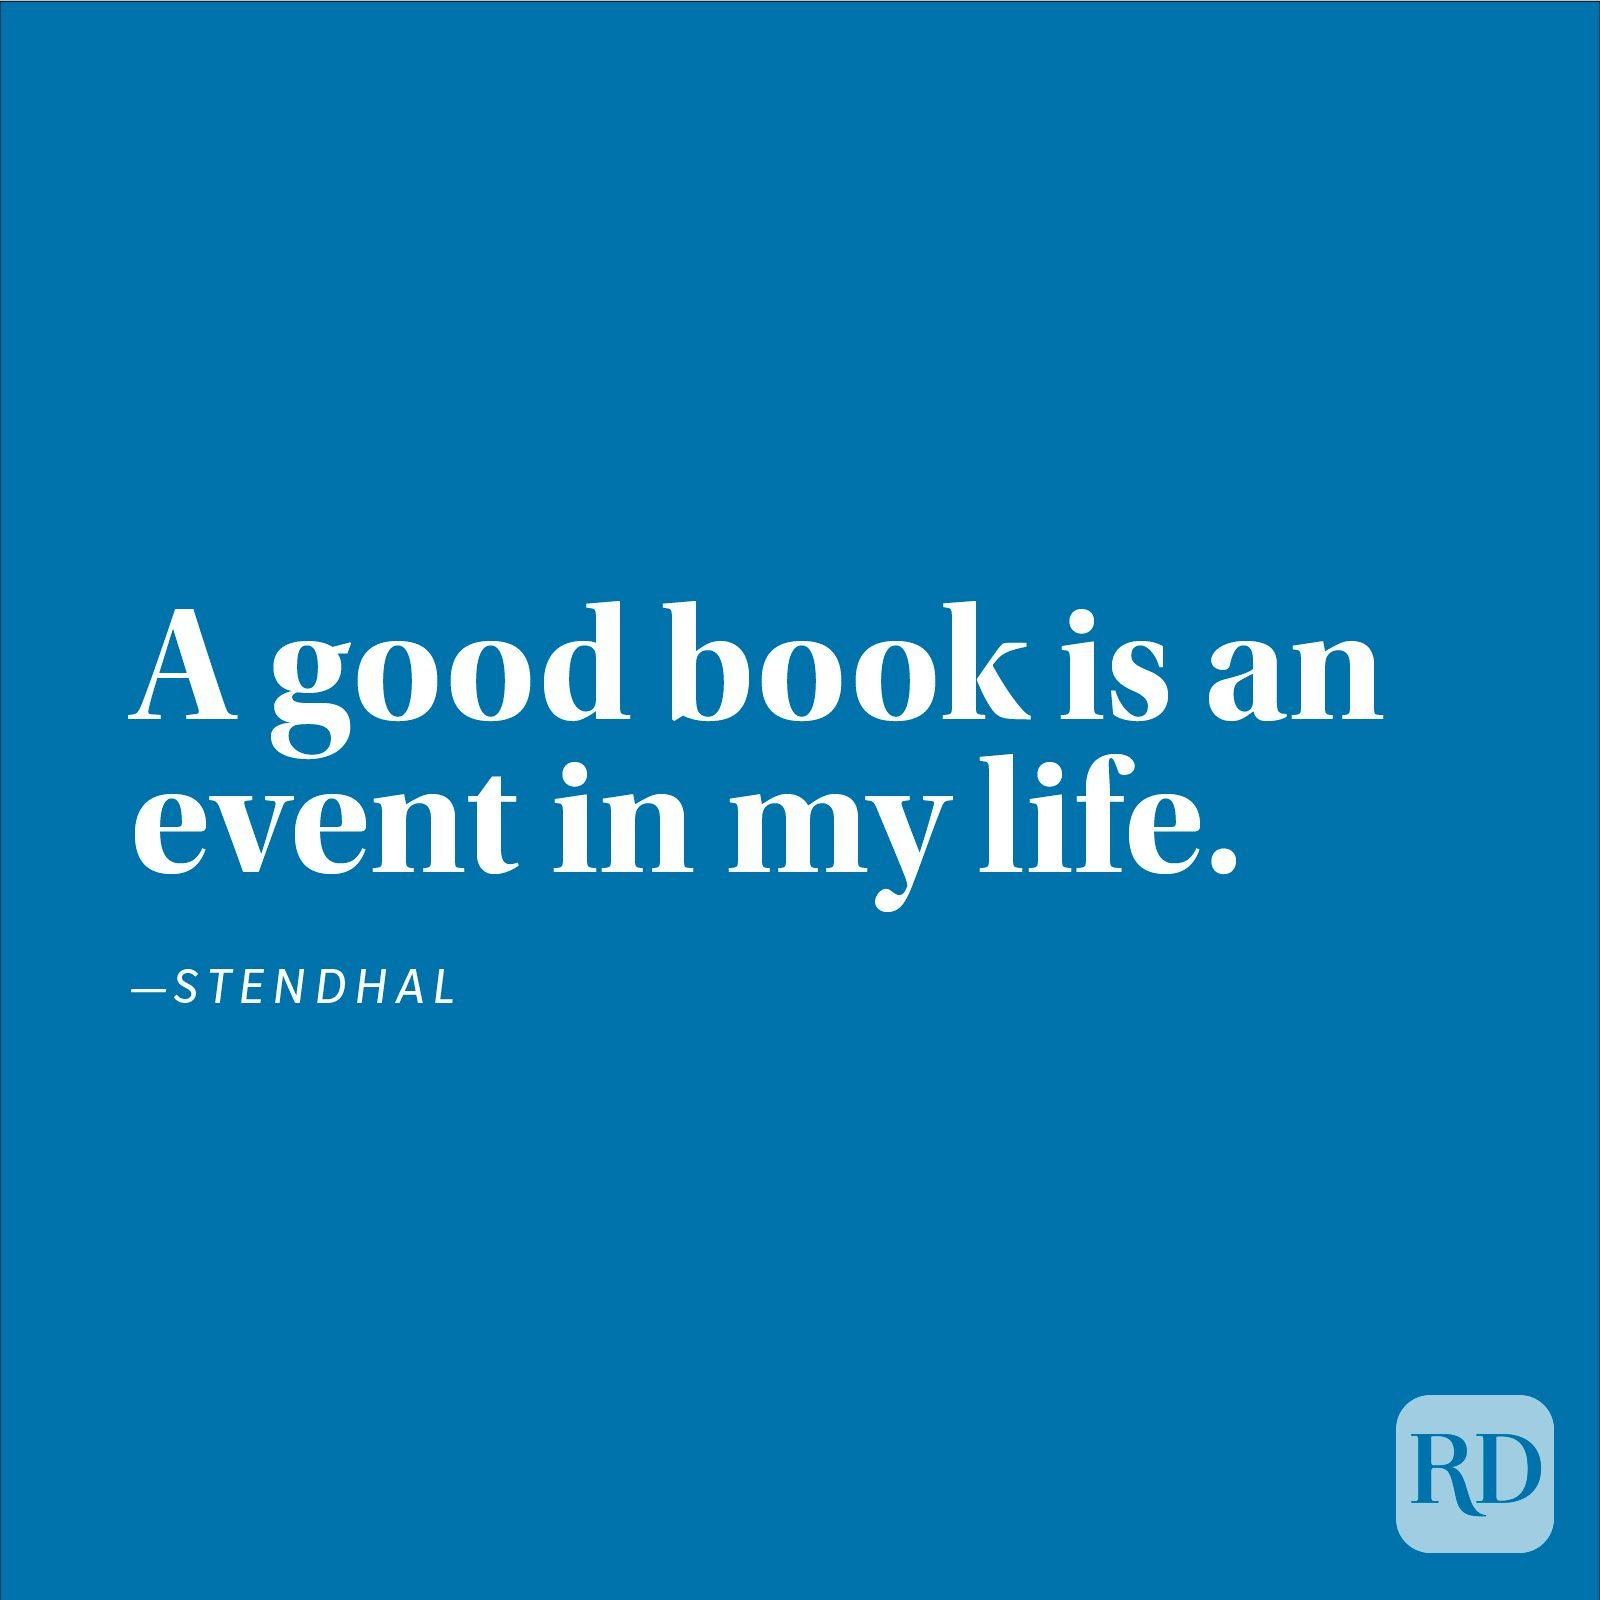 """A good book is an event in my life."" —Stendhal"